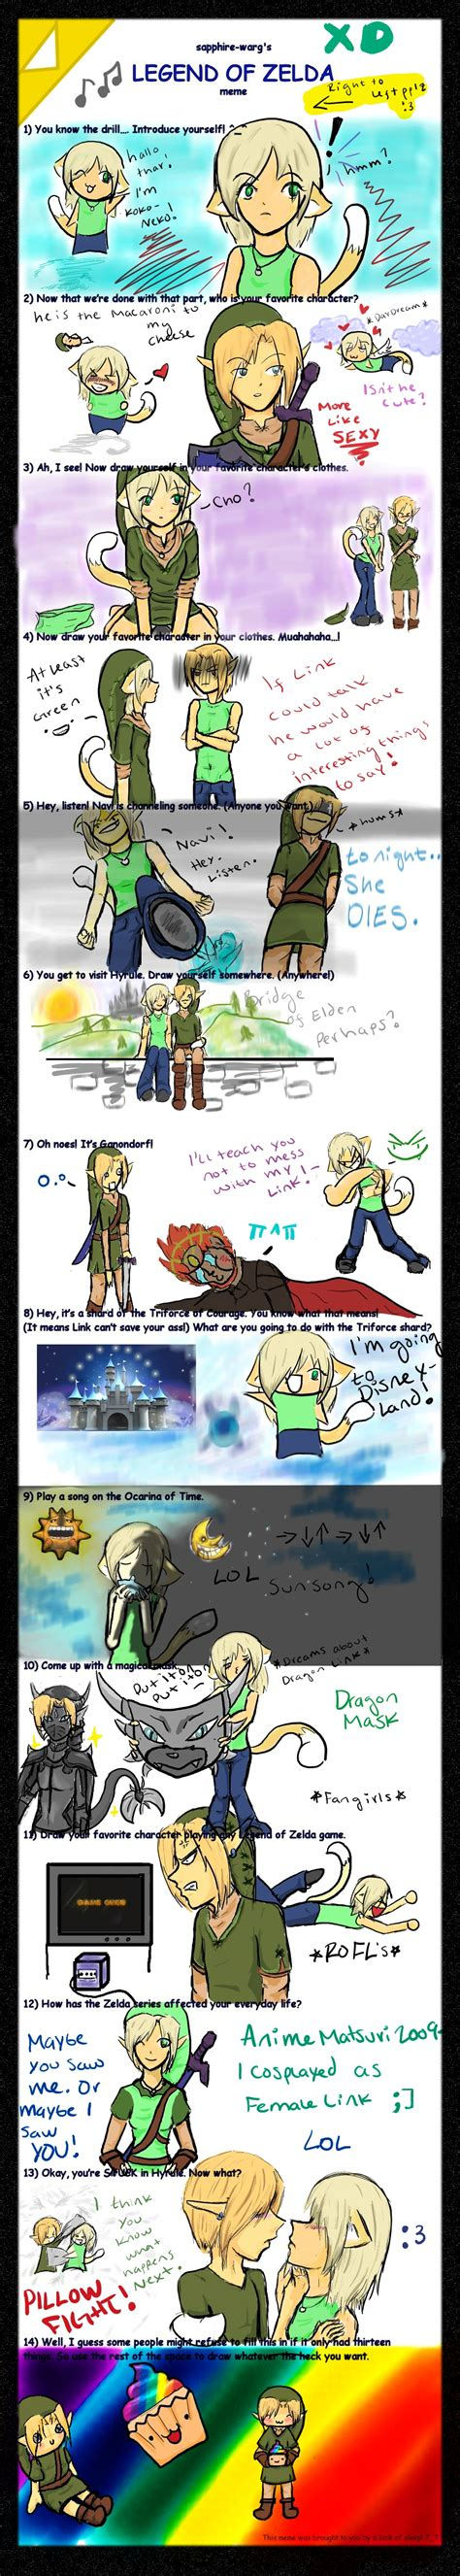 Legend Of Zelda Memes - legend of zelda memes 28 images the legend of zelda images loz memes wallpaper and funny